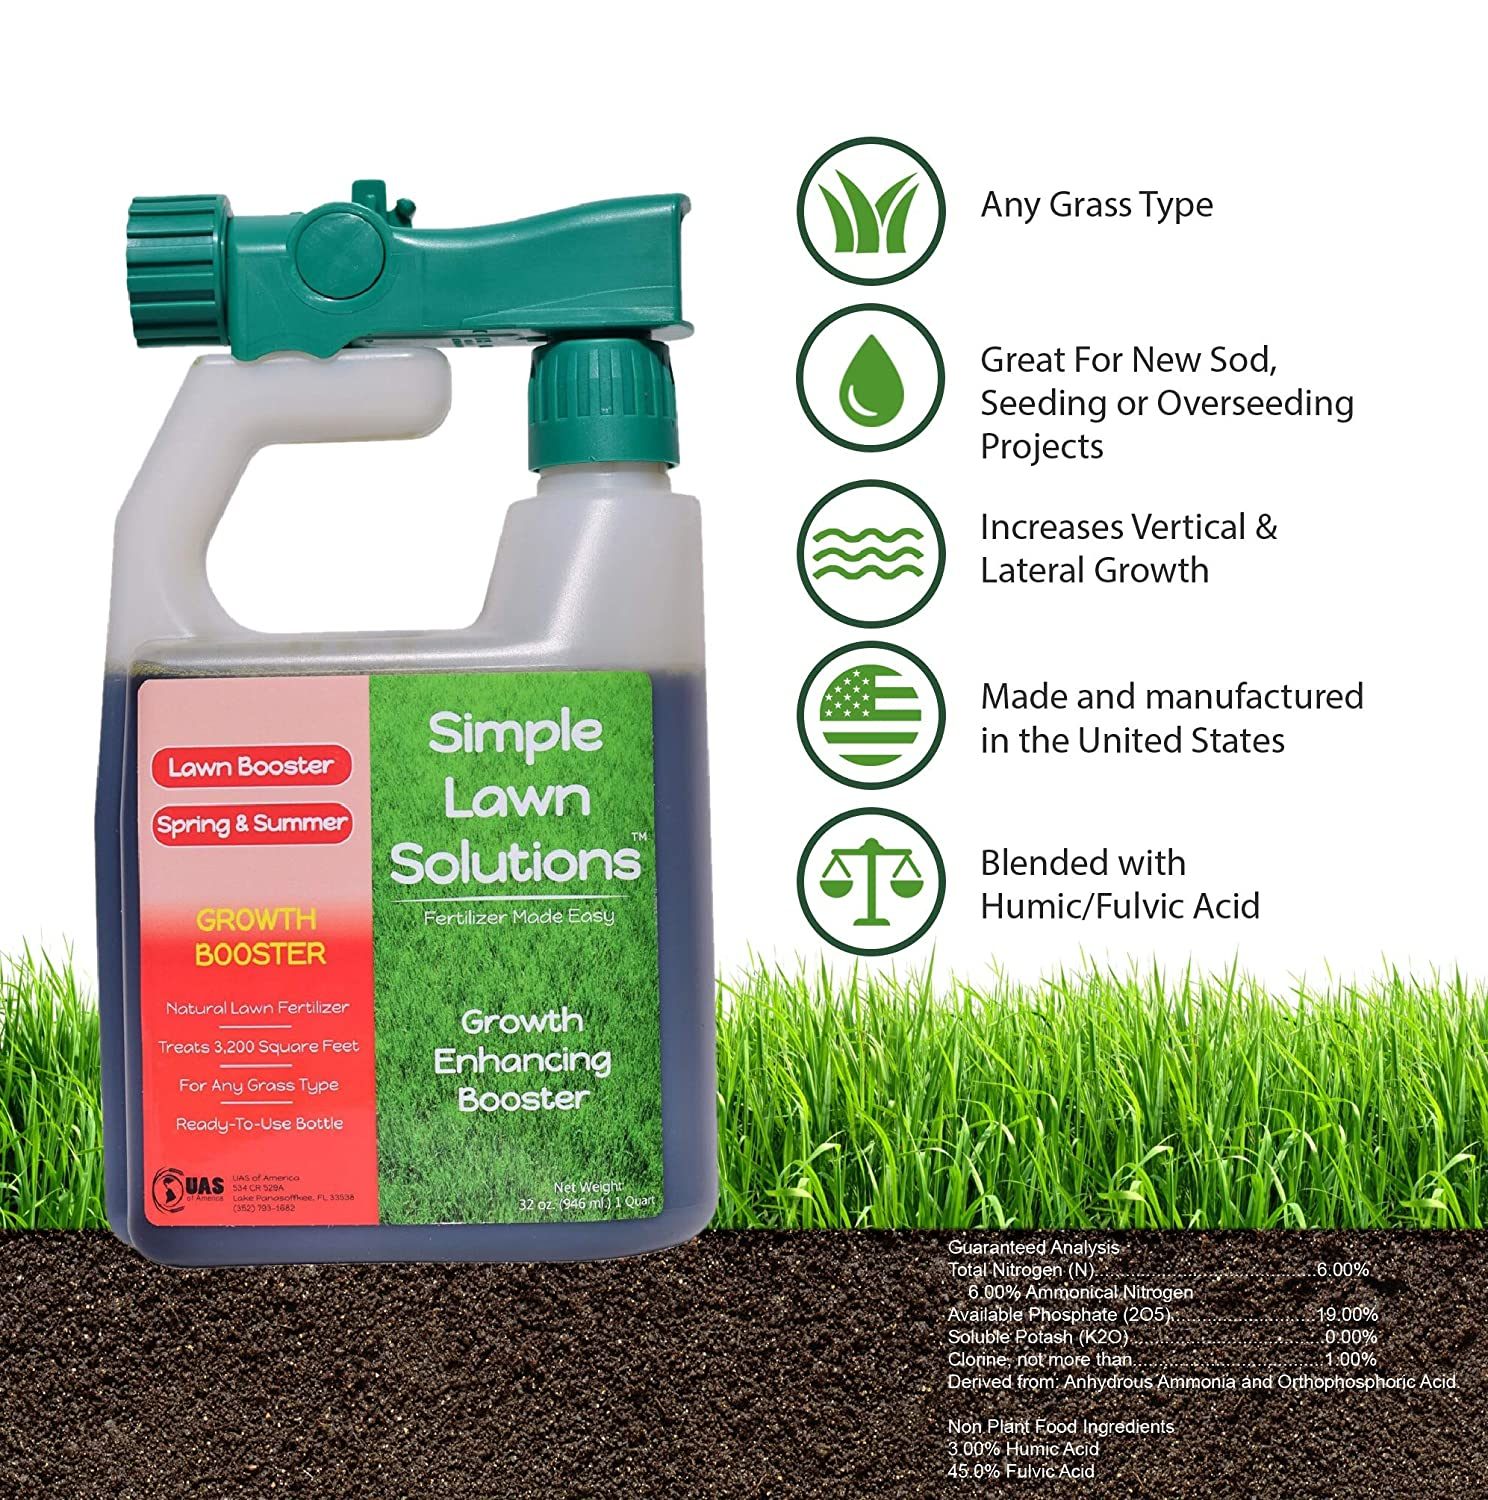 Simple Lawn Solutions Extreme Grass Growth Lawn Booster- Natural Liquid  Spray Concentrated Fertilizer with Fulvic & Humic Acid- Any Grass Type (32  oz